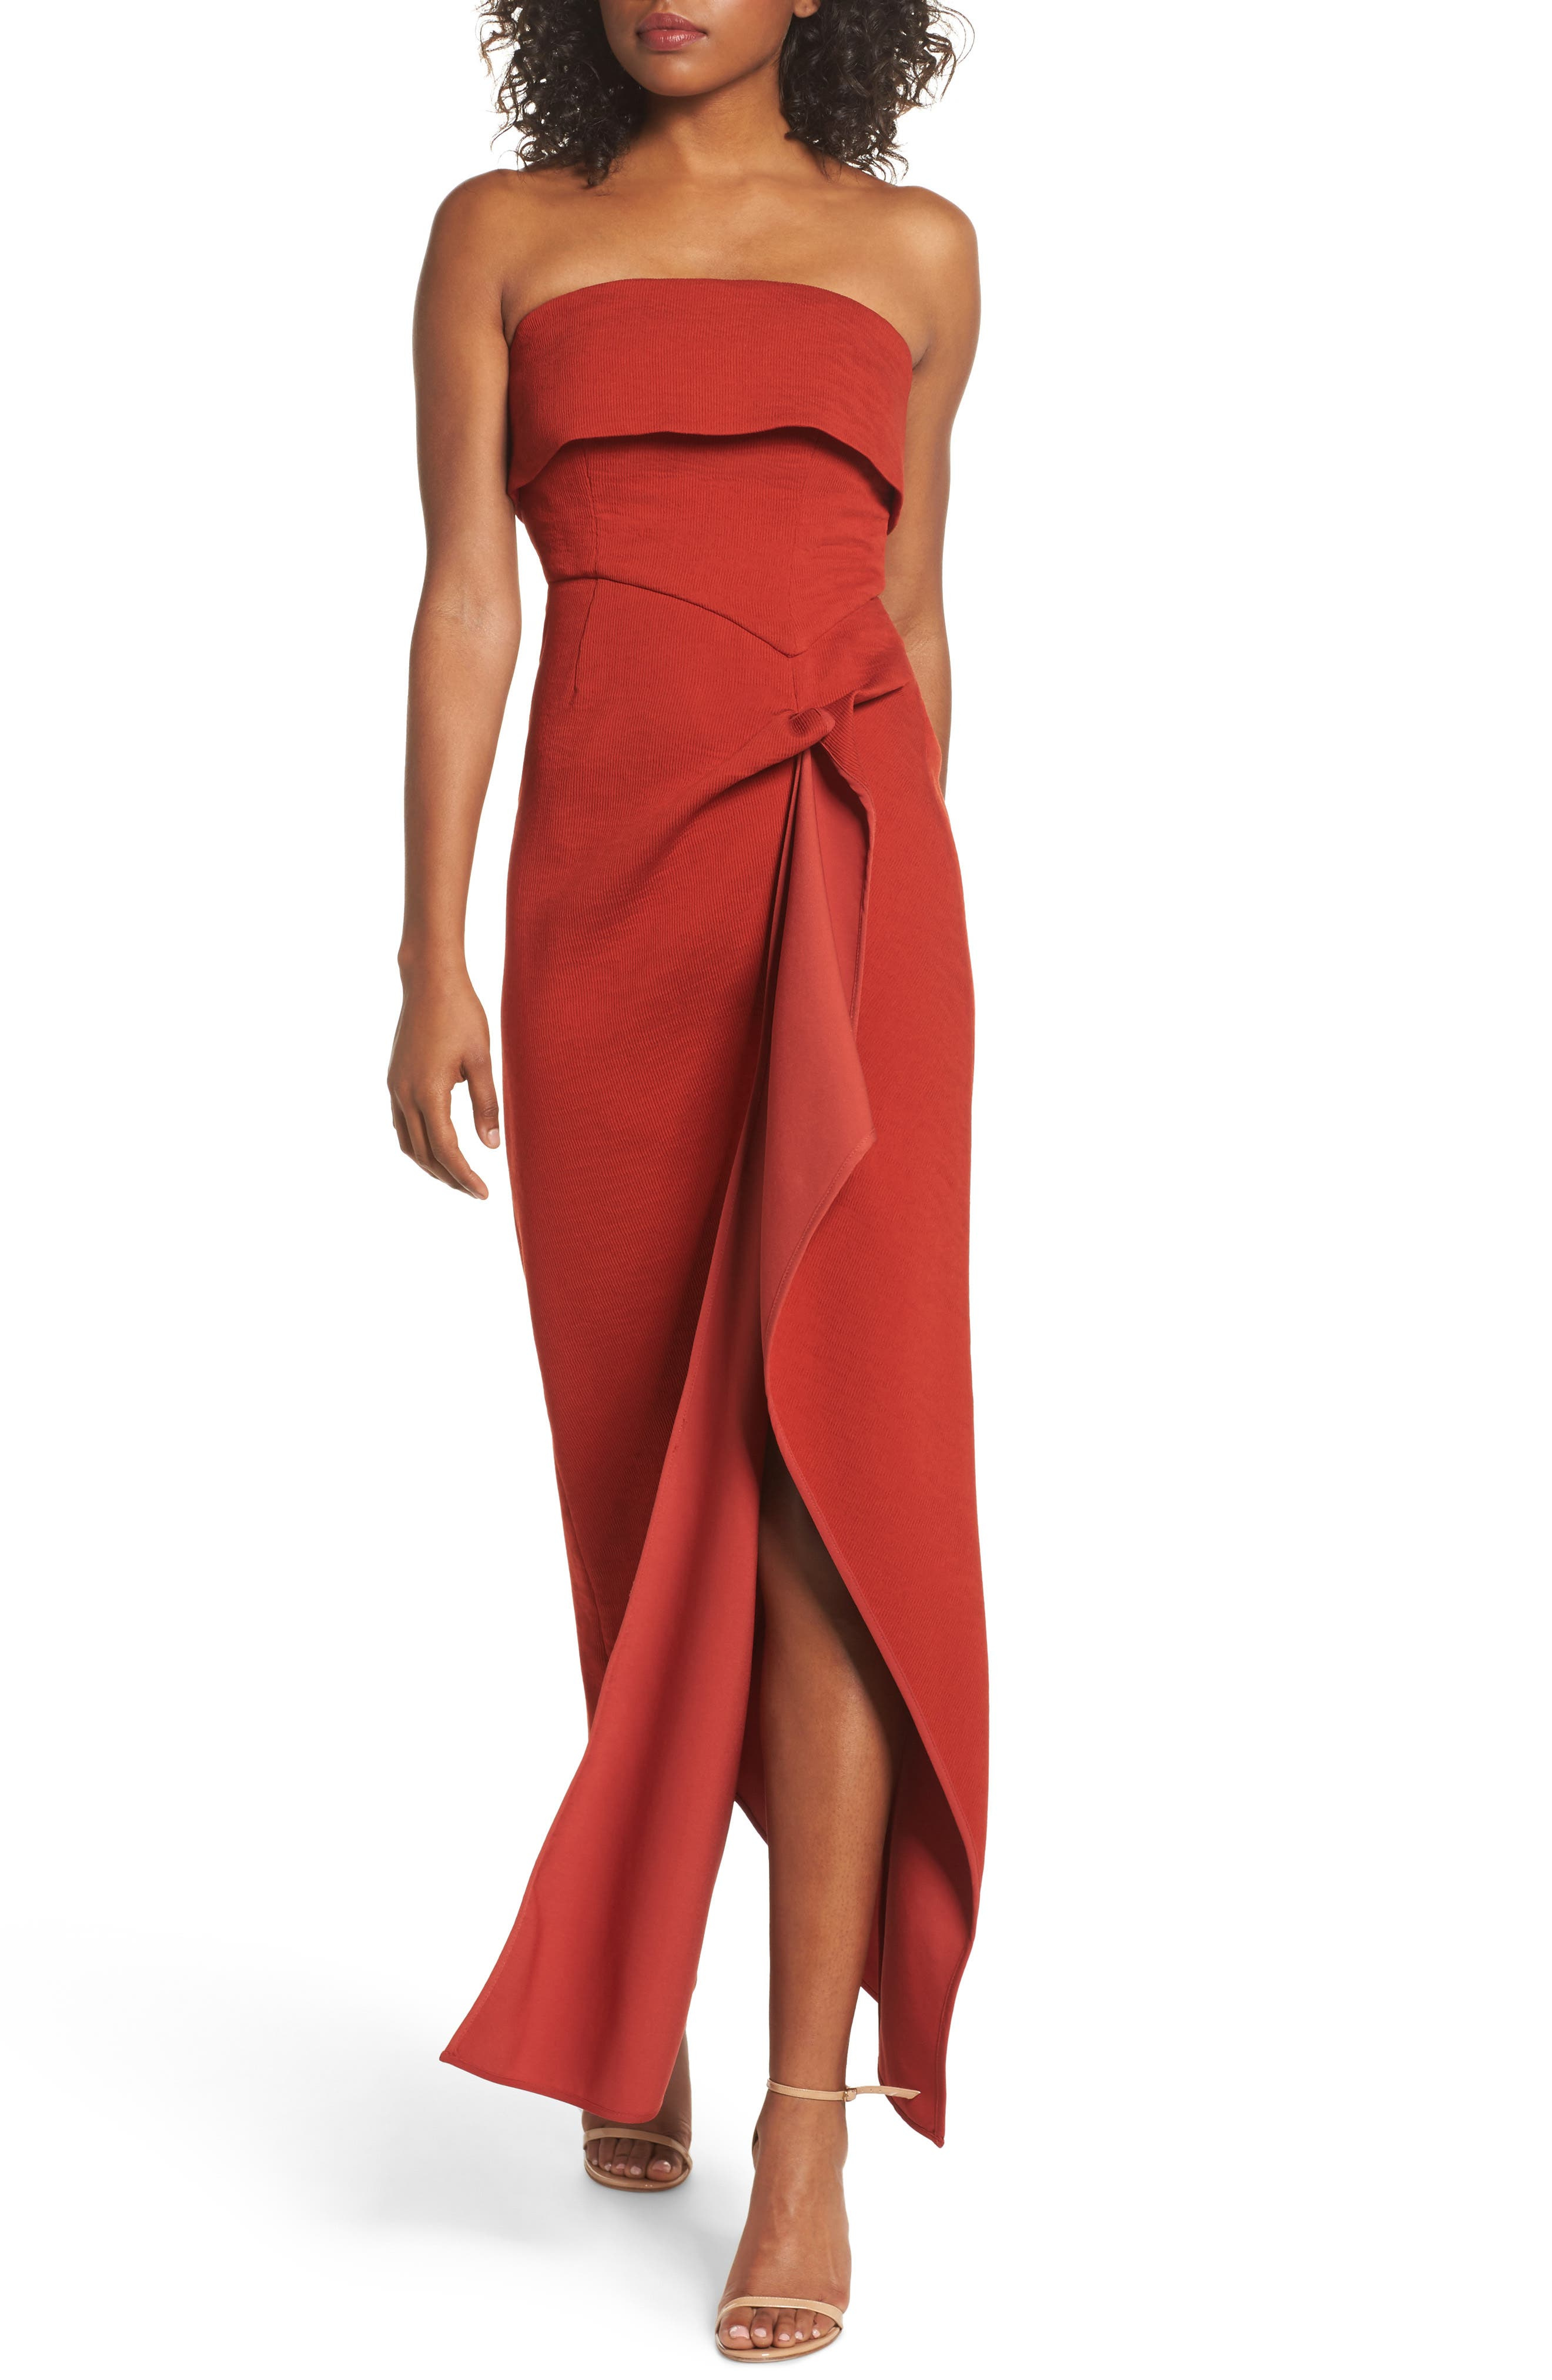 Alternate Image 1 Selected - C/MEO Collective Fluidity Strapless Maxi Dress